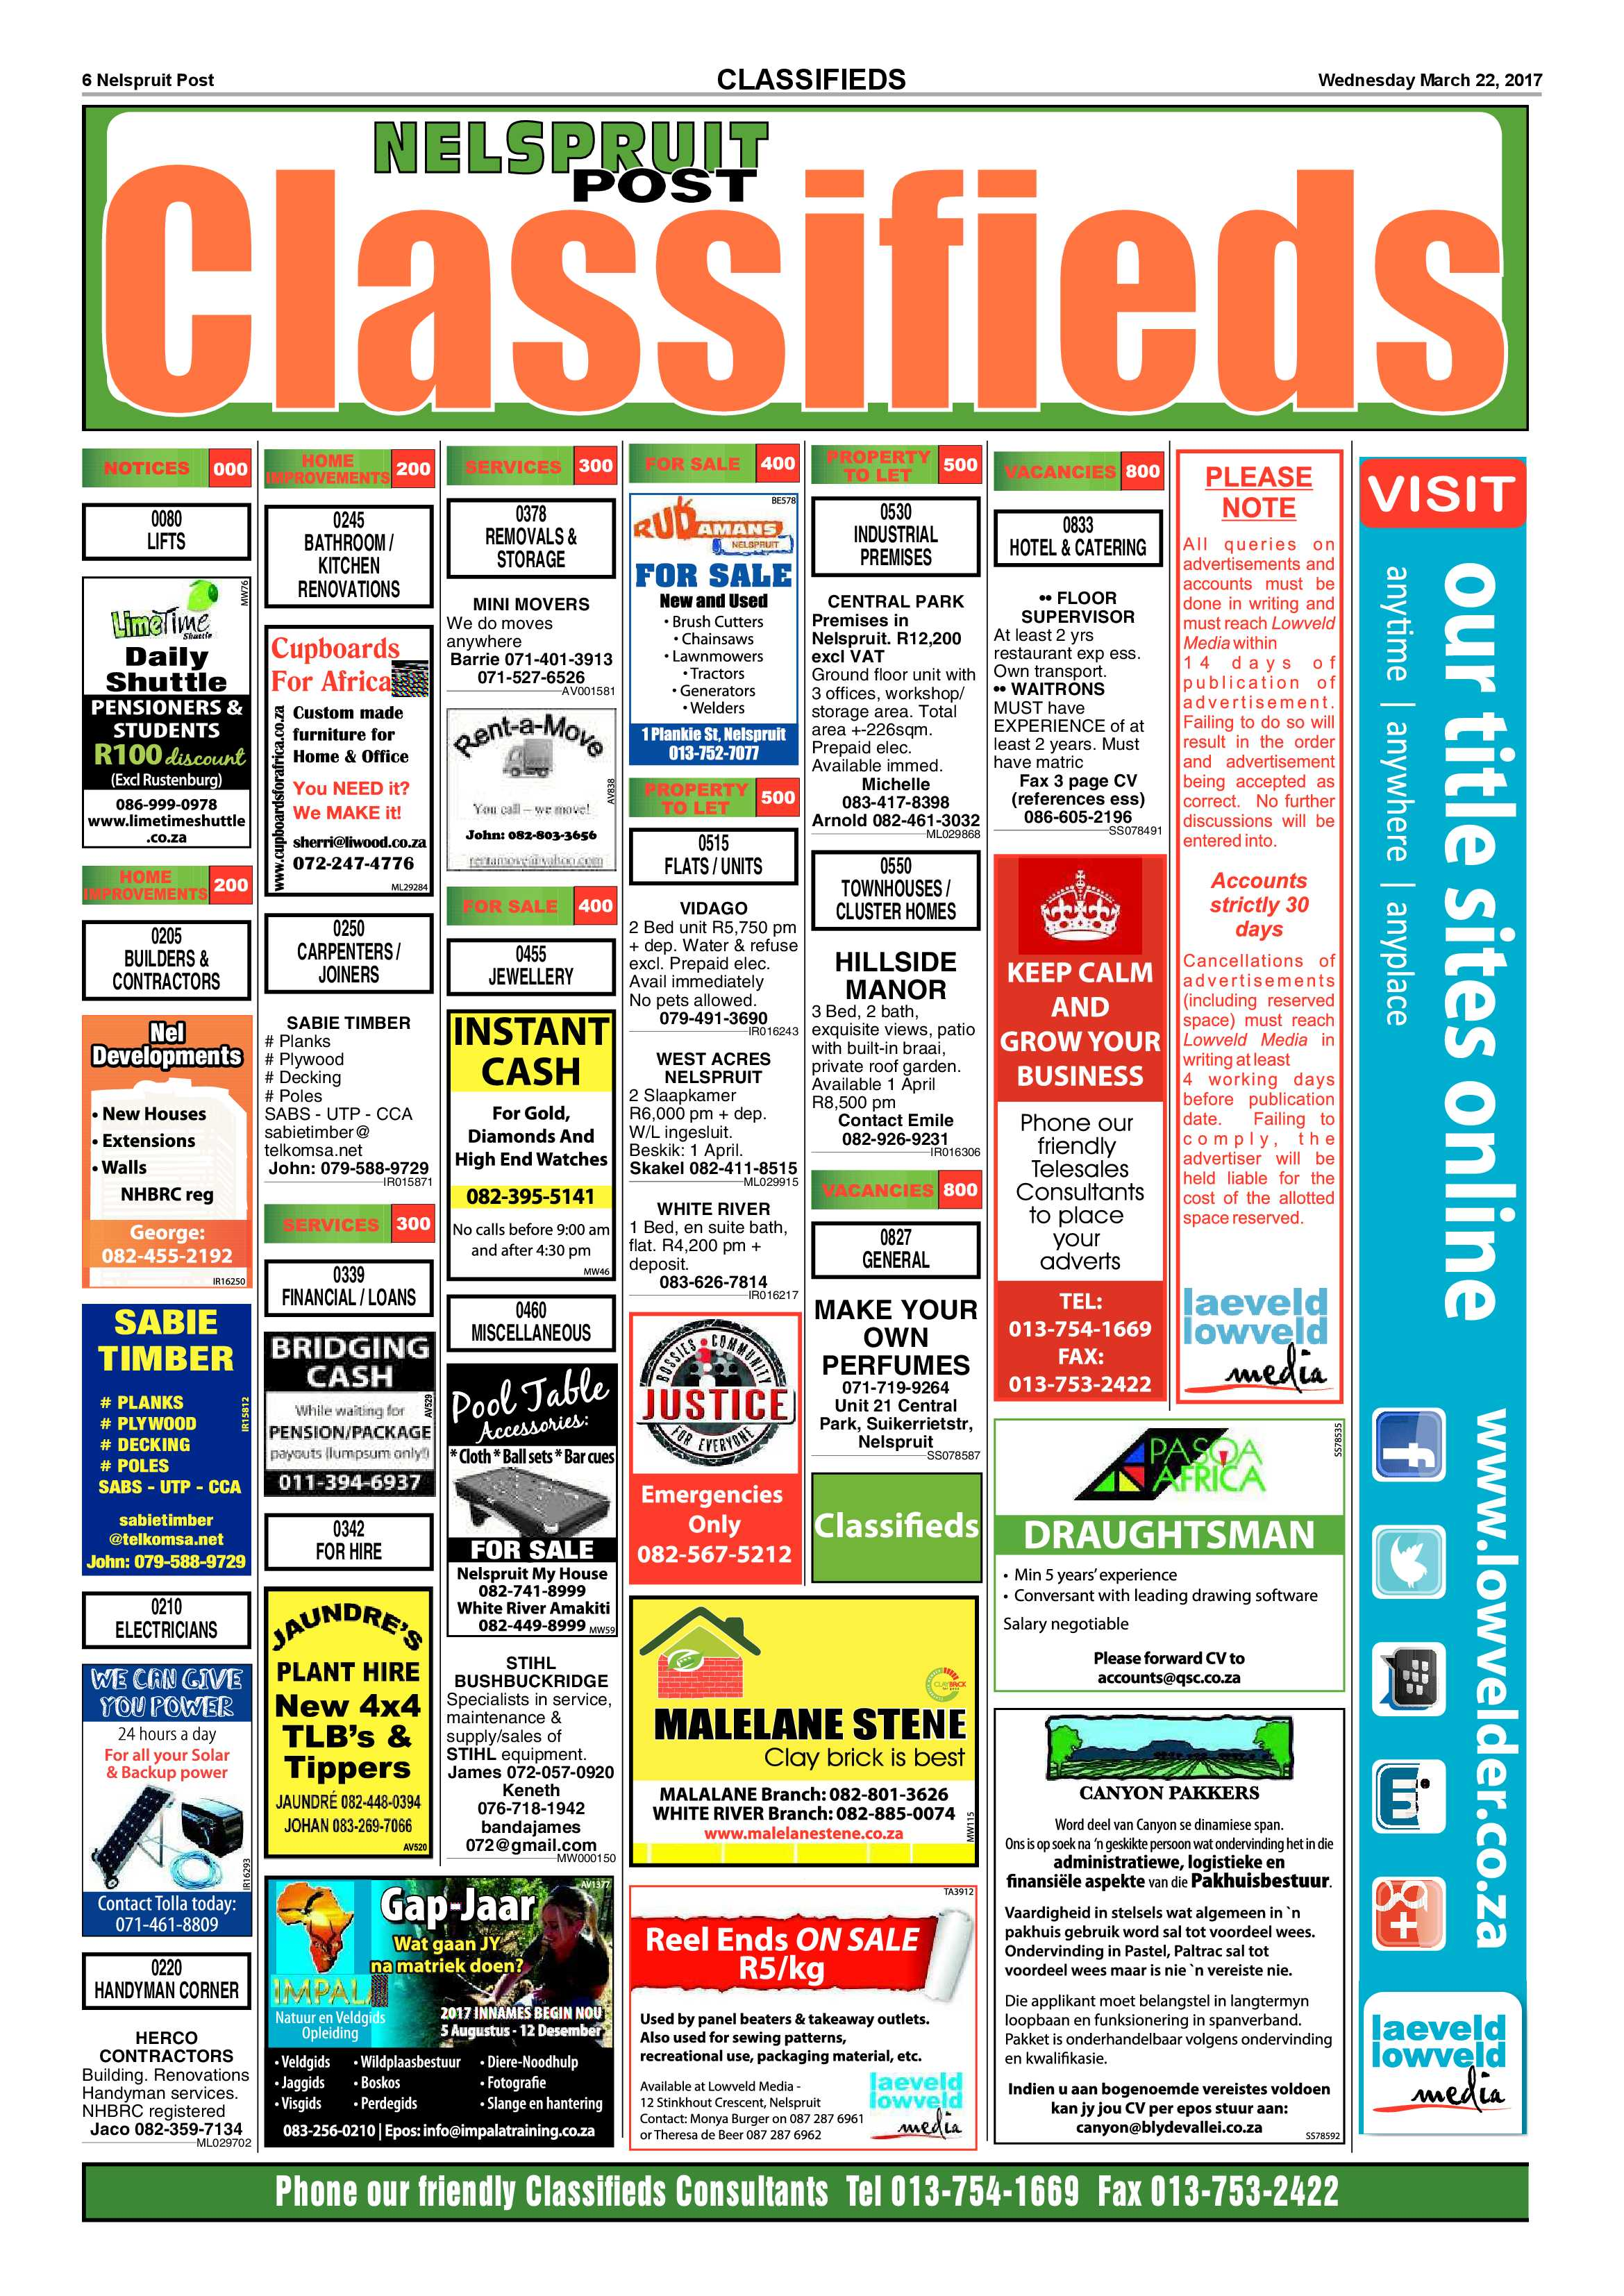 Posts for march page 7 - Nelspruit Post 22 March 2017 Epapers Page 6